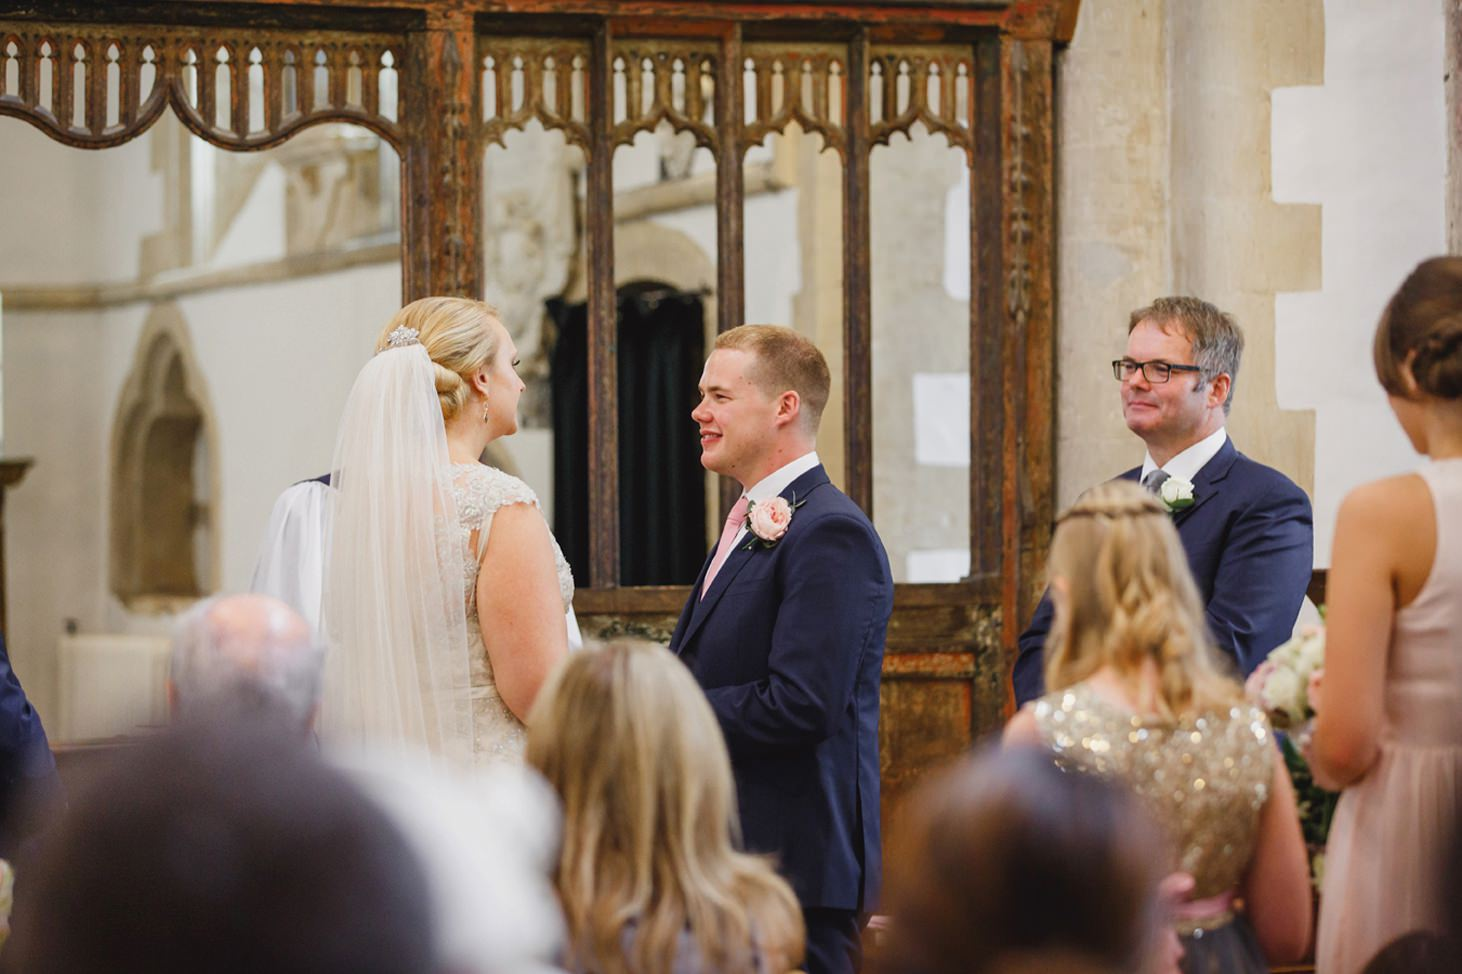 oxfordshire wedding photography bride and groom wedding ceremony